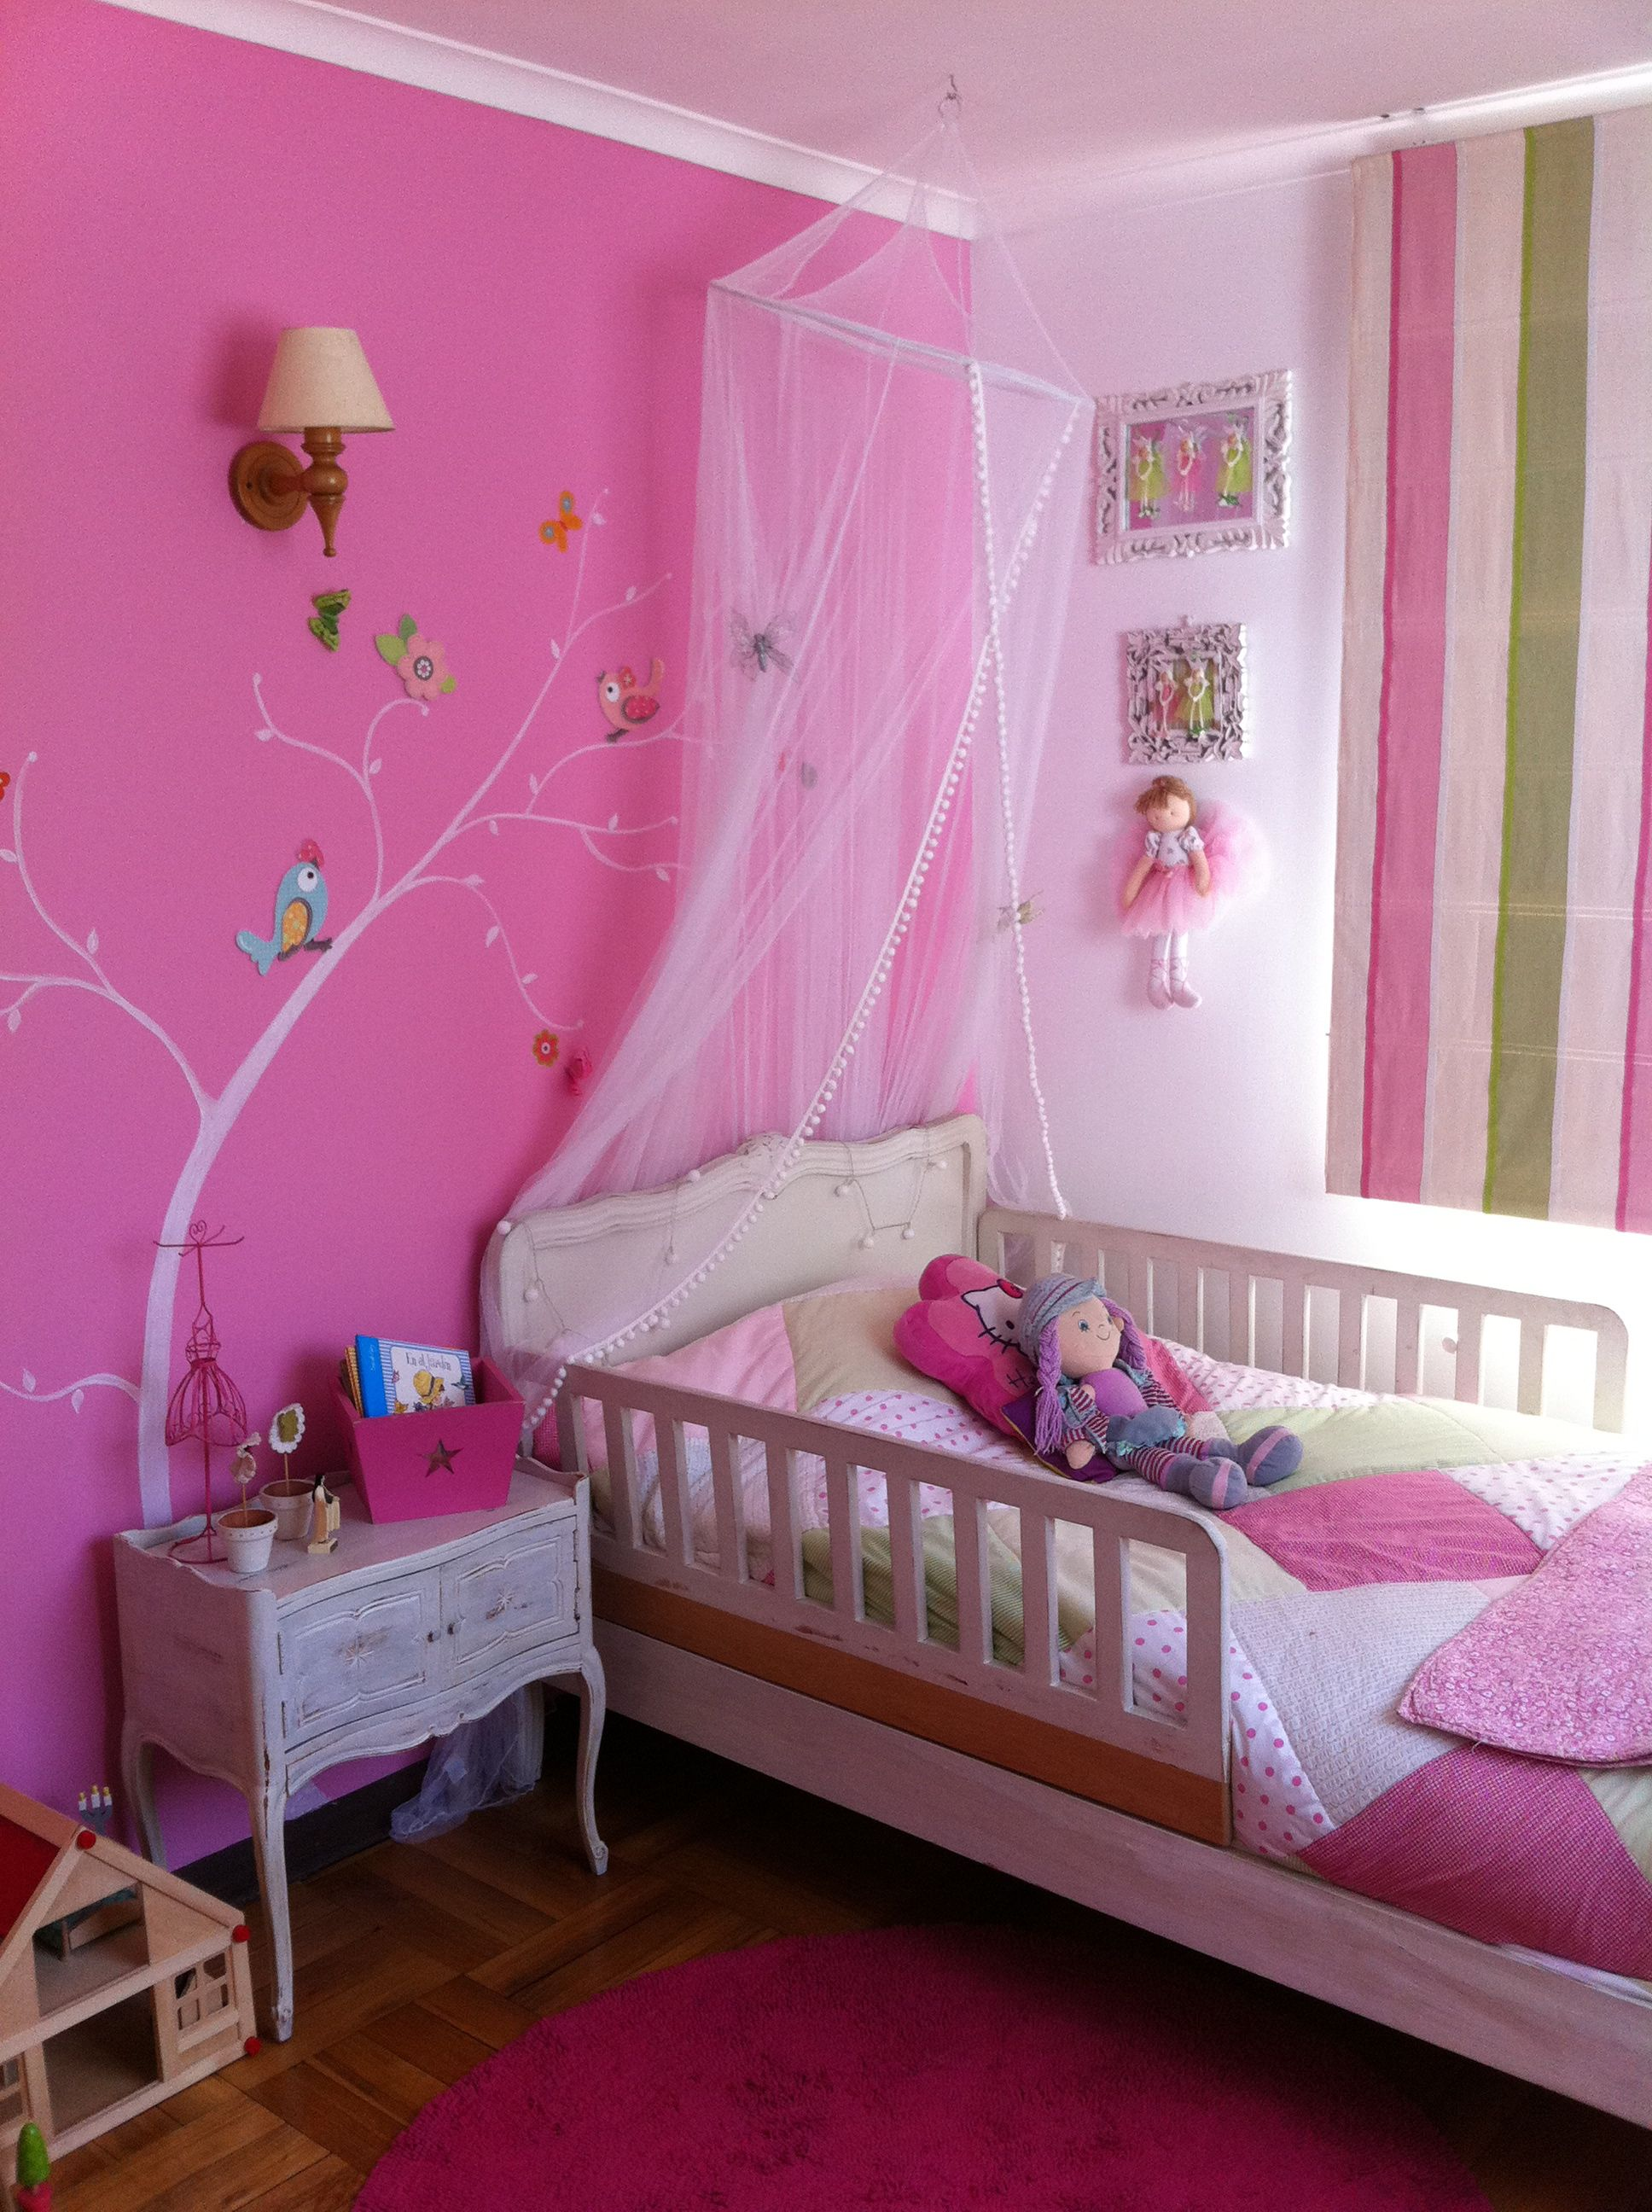 Dormitorio ni as dormitorio miranda en 2019 pinterest - Amazon dormitorios ...